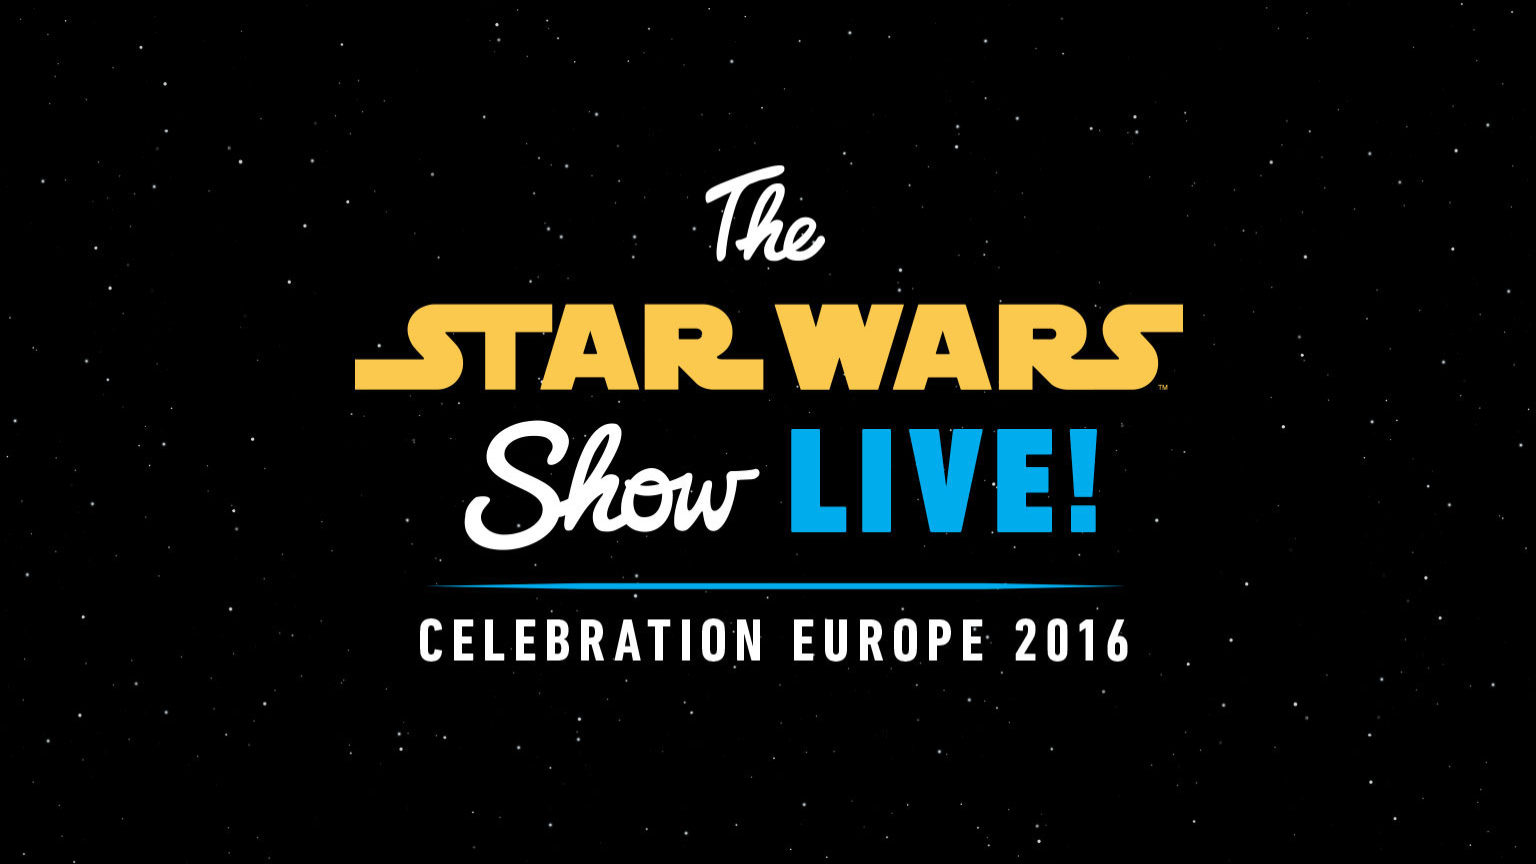 The Star Wars Show LIVE